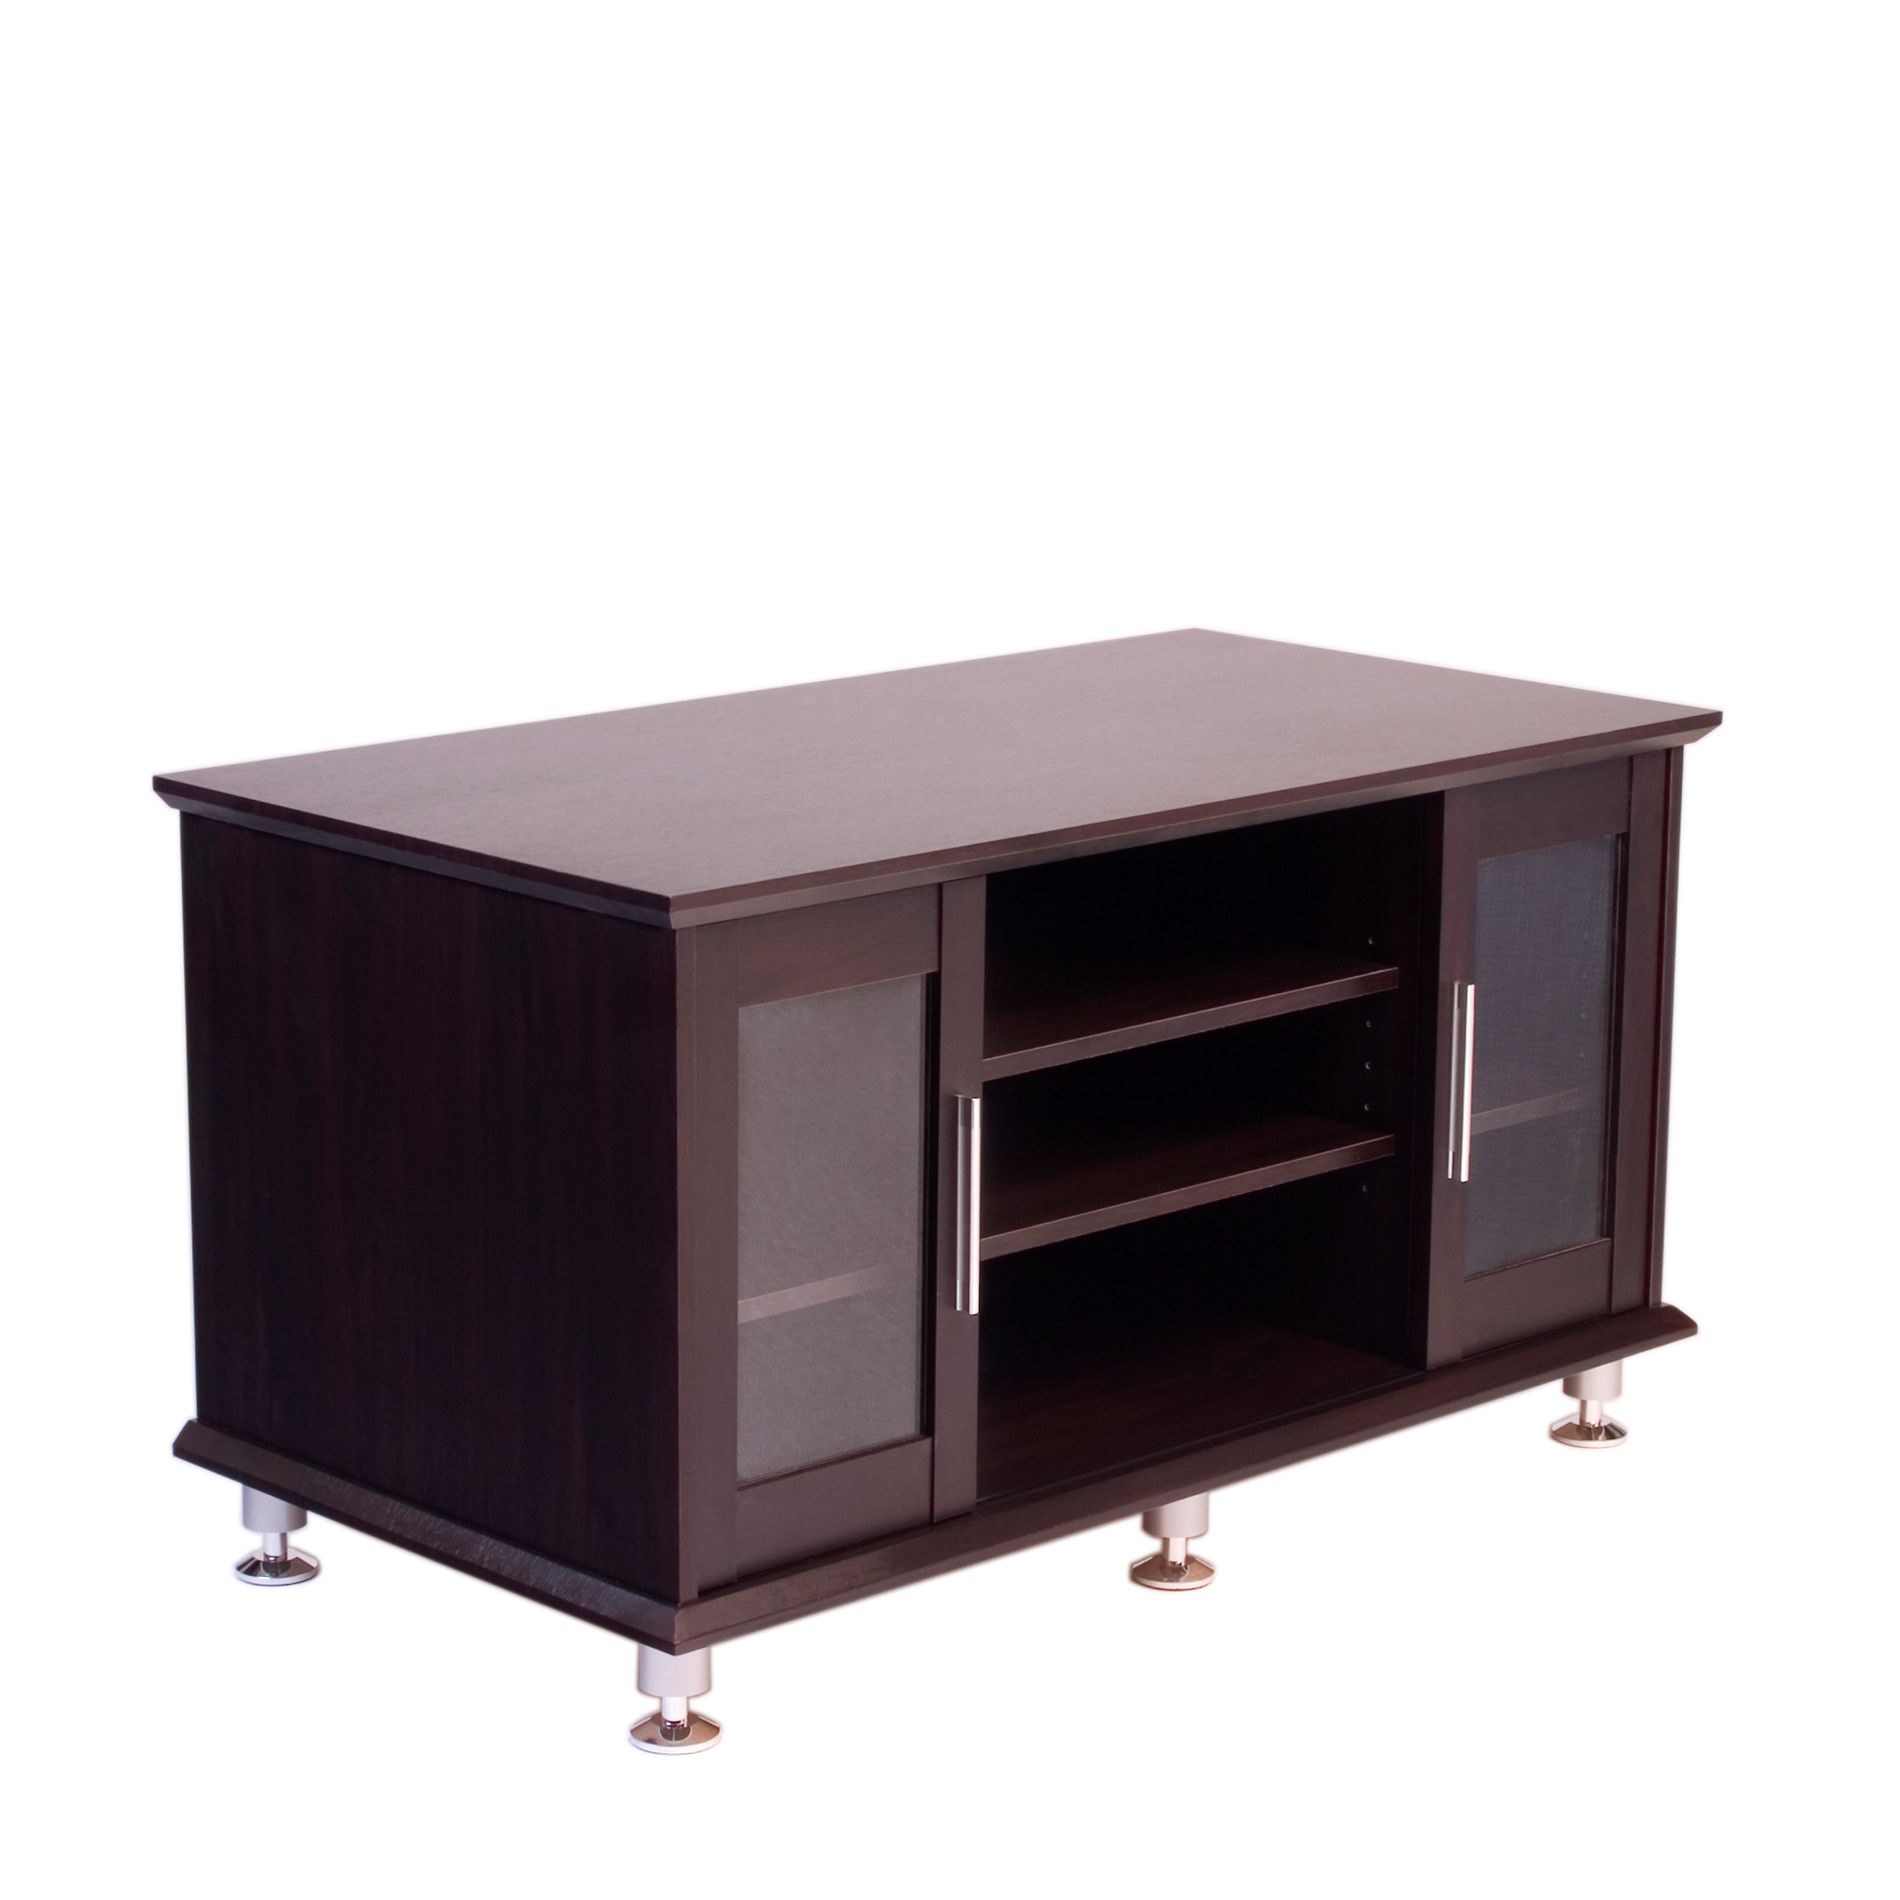 220974-00-04 - Navarre Tv Stand Sears Outlet